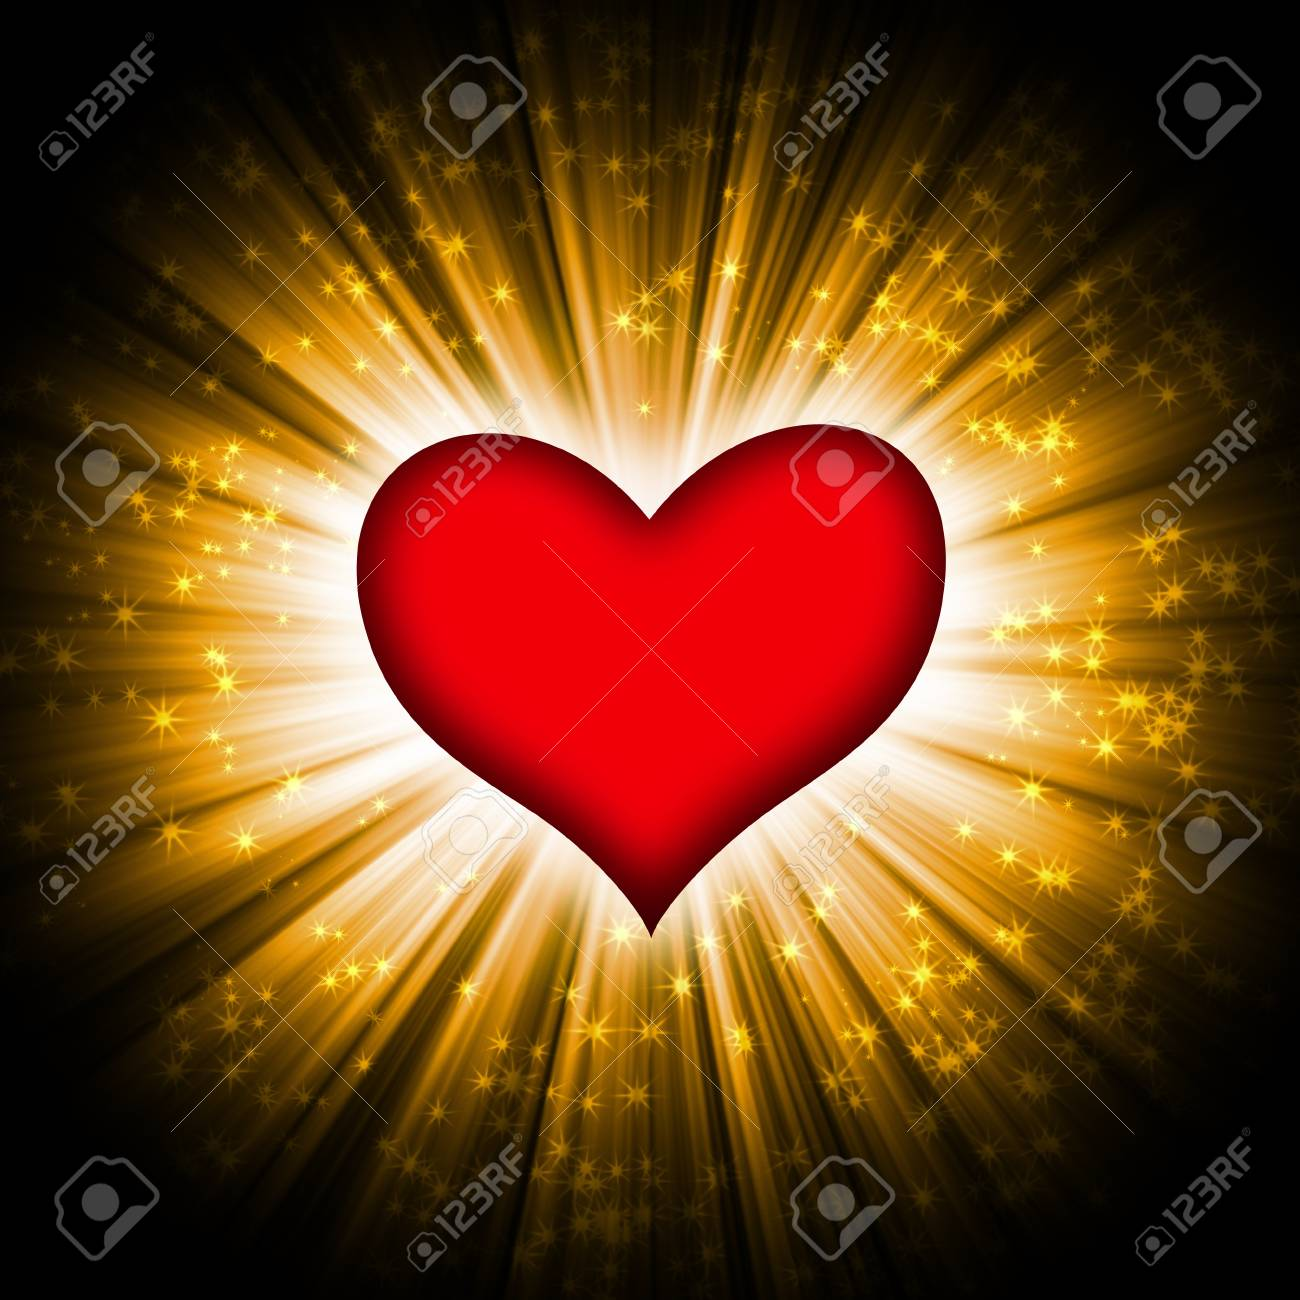 red heart with rays on a black background, abstract Stock Photo - 16487620